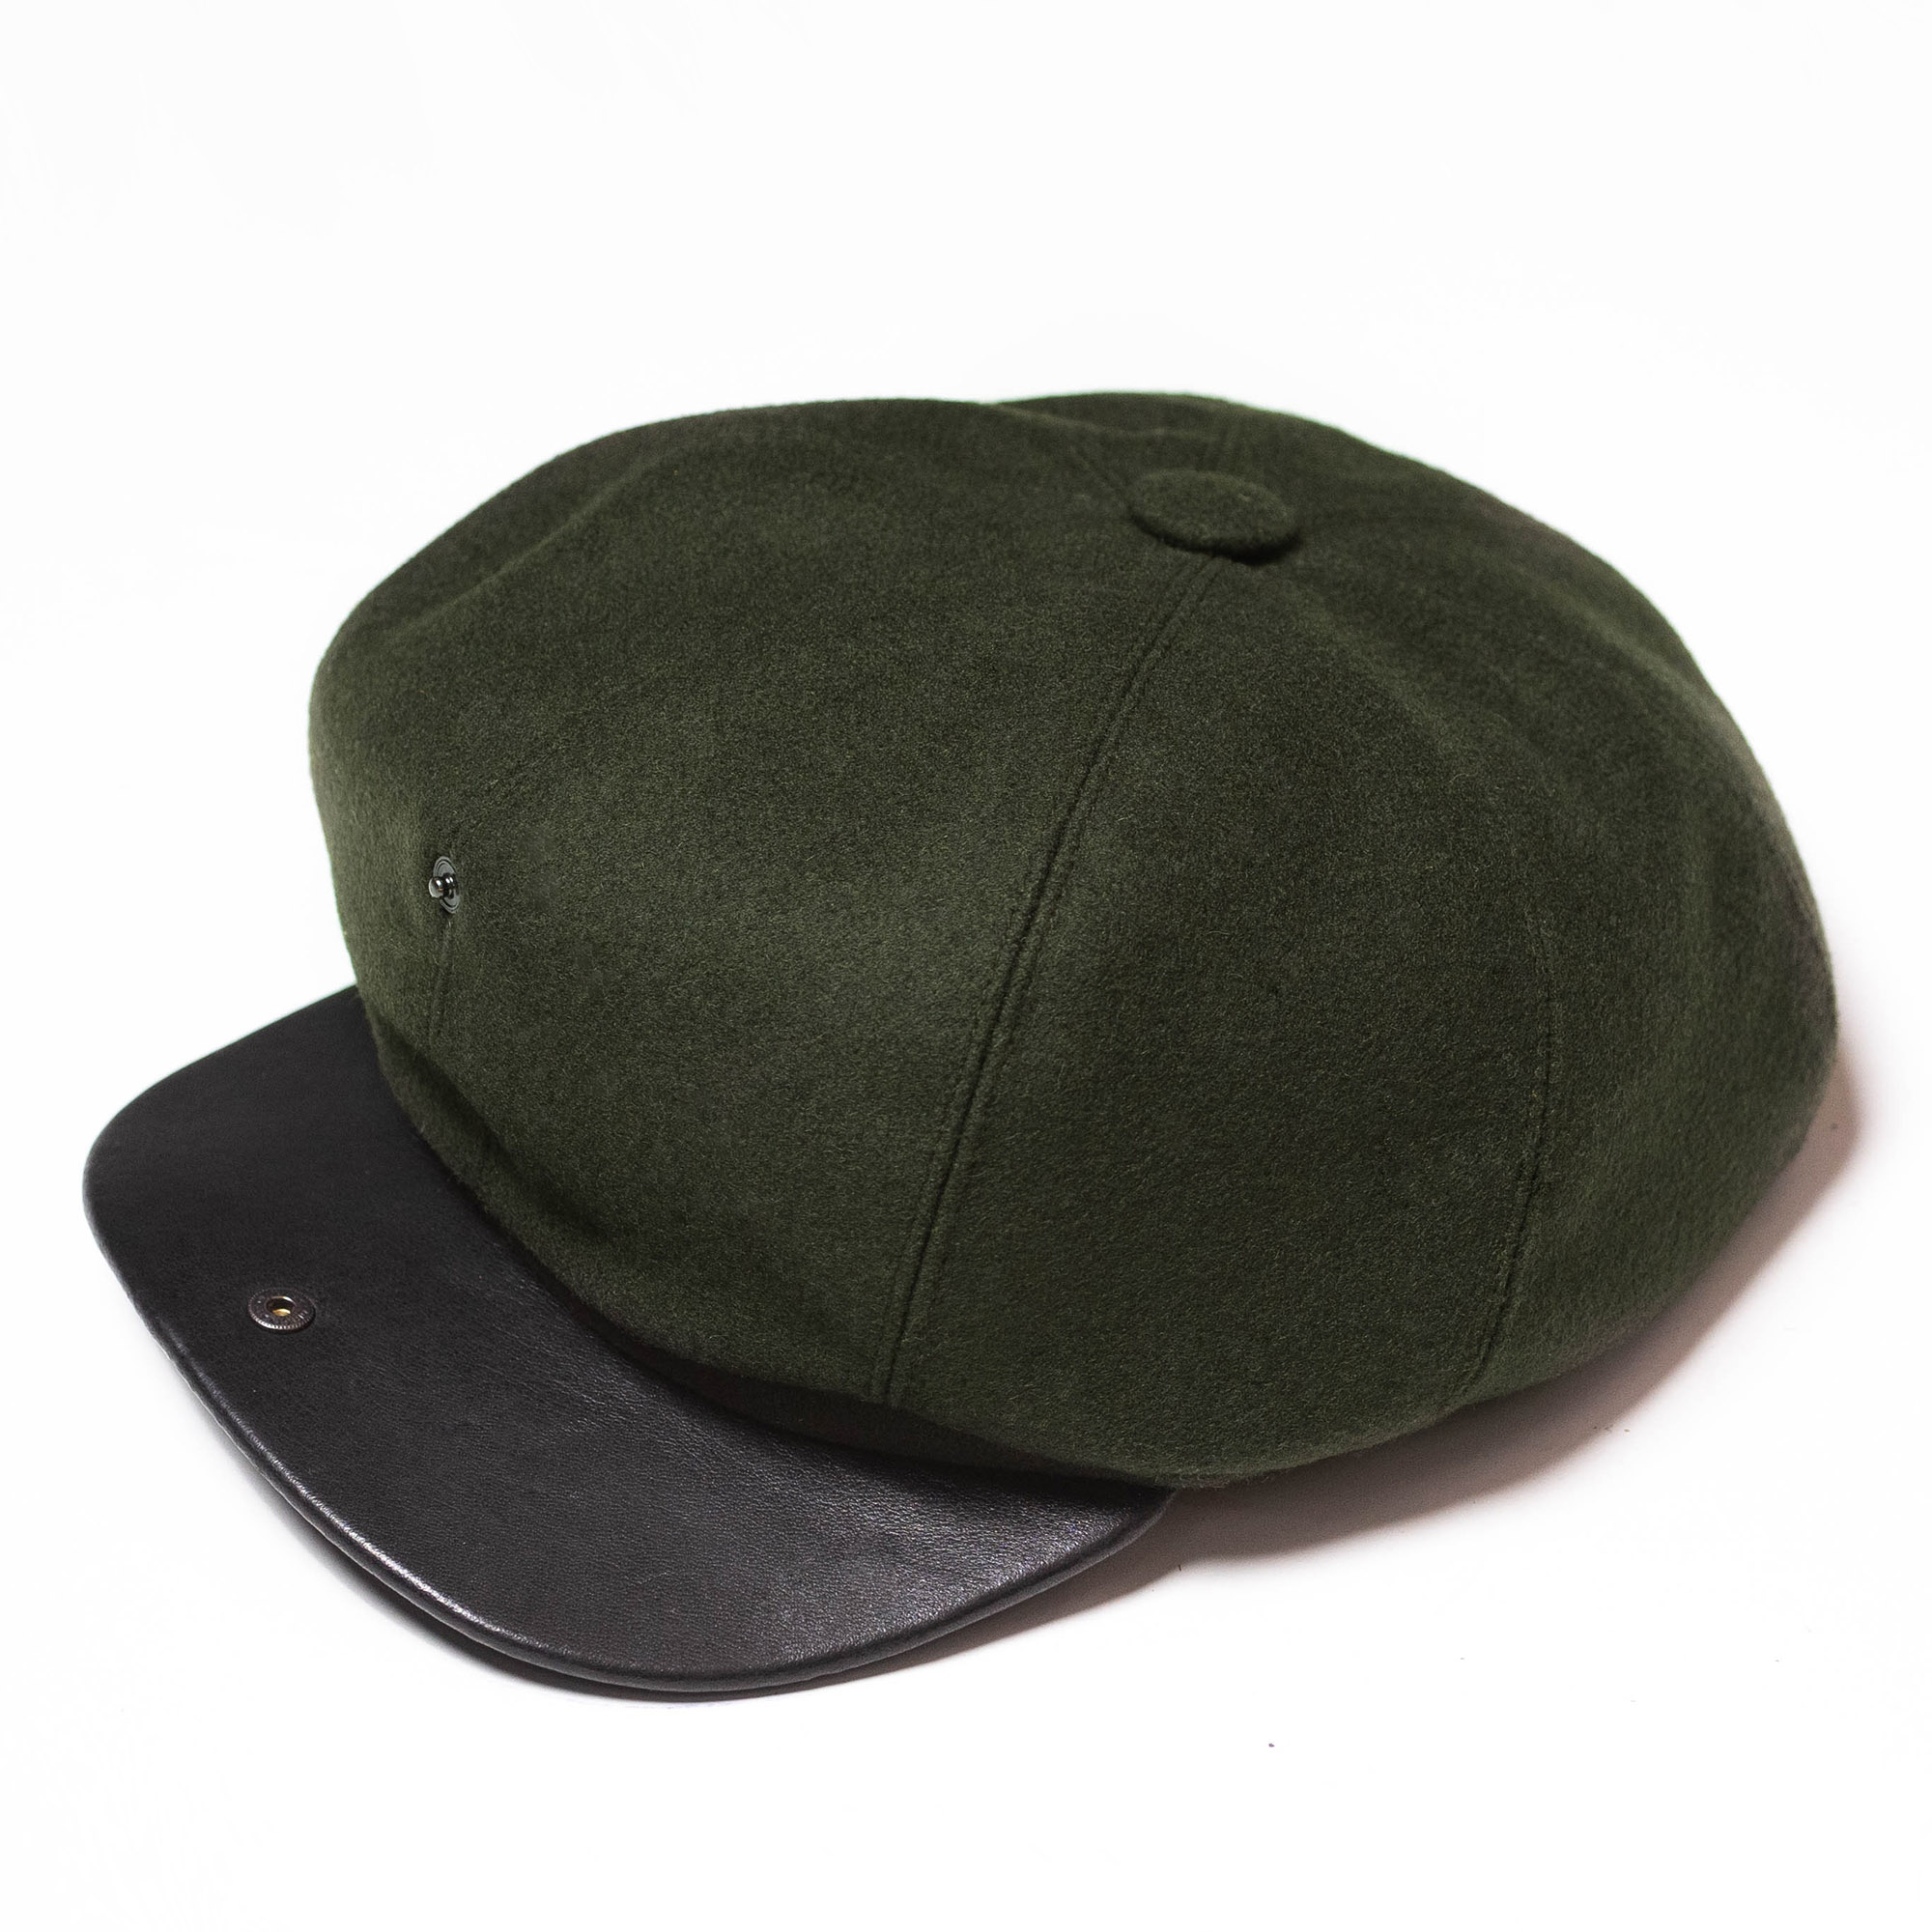 shangri-la-heritage-outlaw-forest-green-wool-8-panel-riders-cap-still-life-open